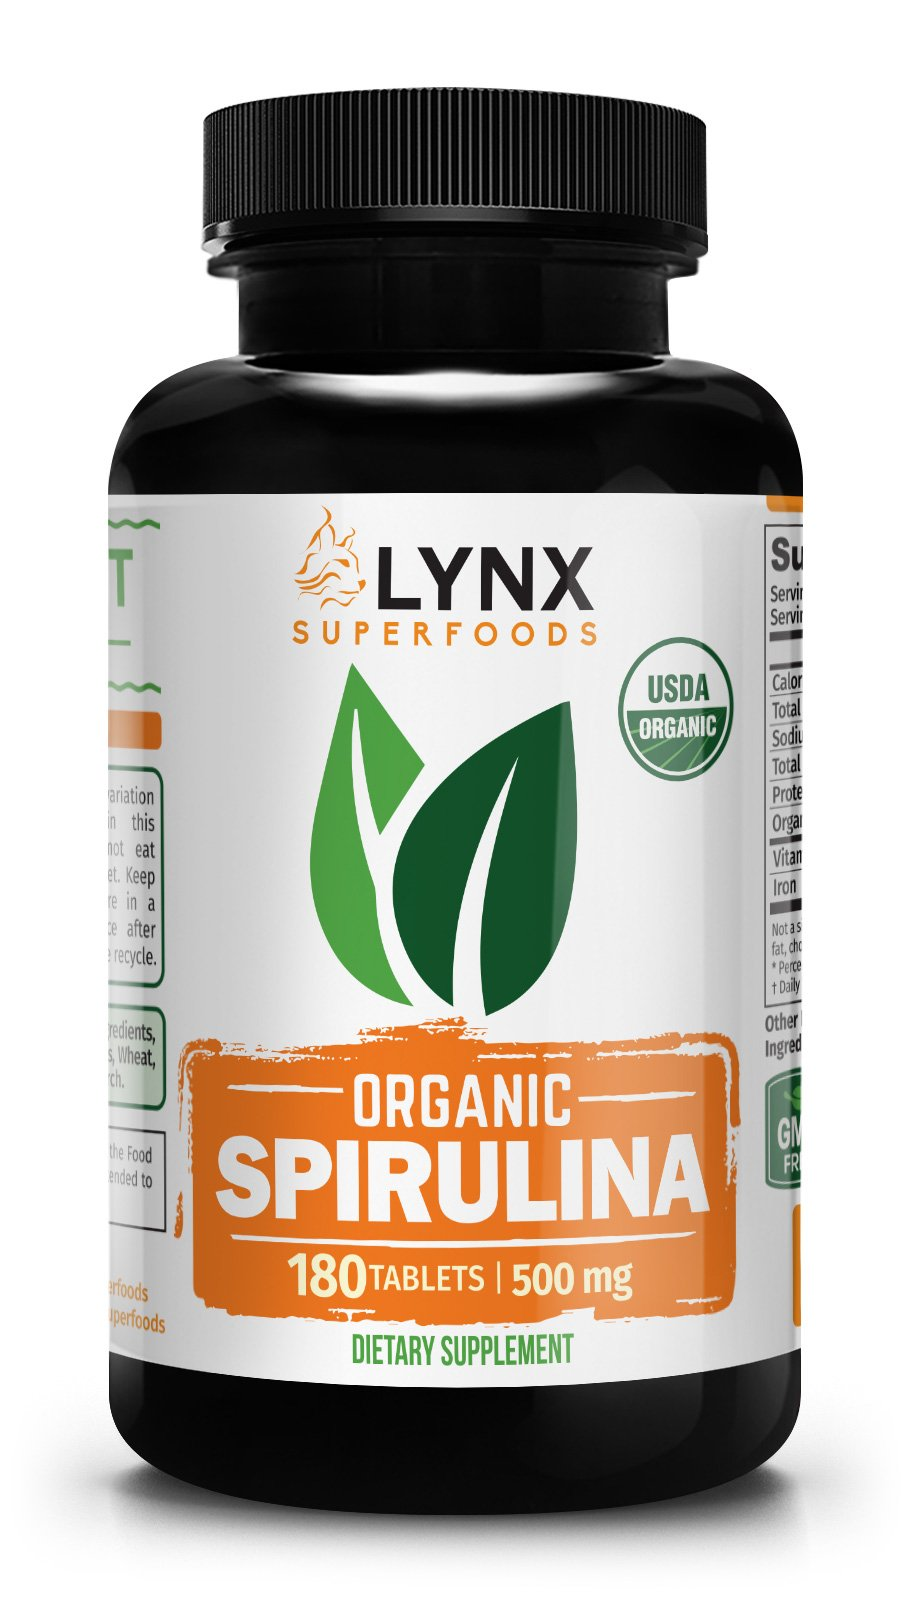 Lynx Superfoods Organic Spirulina Tablets - Highest Quality USDA Organic Spirulina, 100% Vegetarian, Non-Irradiated, 500mg Tablets, 180 Count